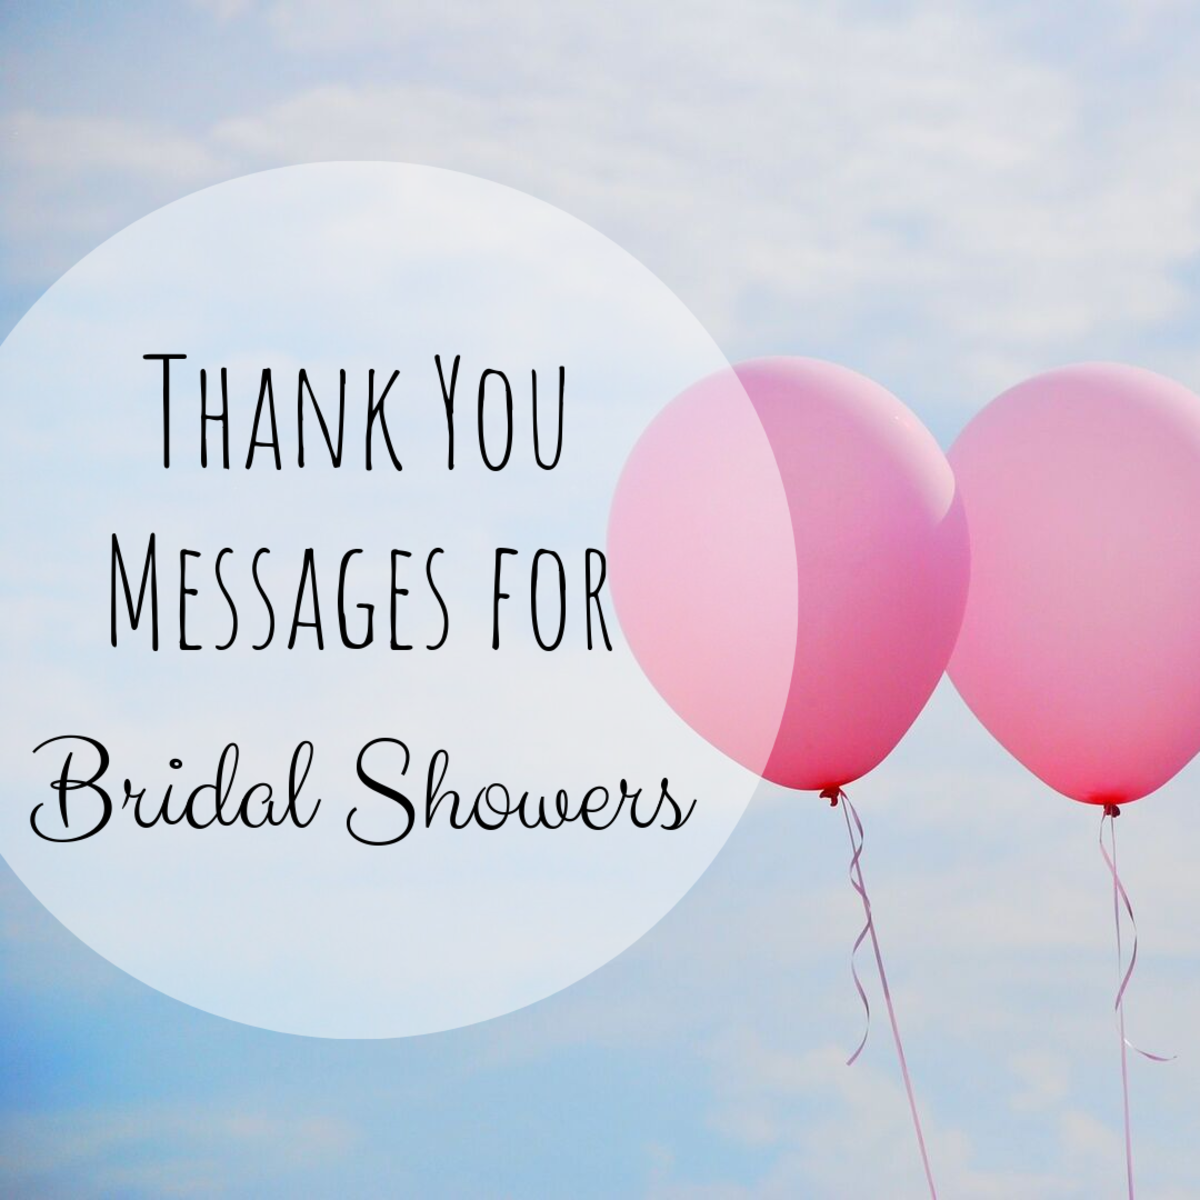 Find some inspiration for what to say in a thank you note or card for your bridal shower. Get ideas for Facebook status updates as well.